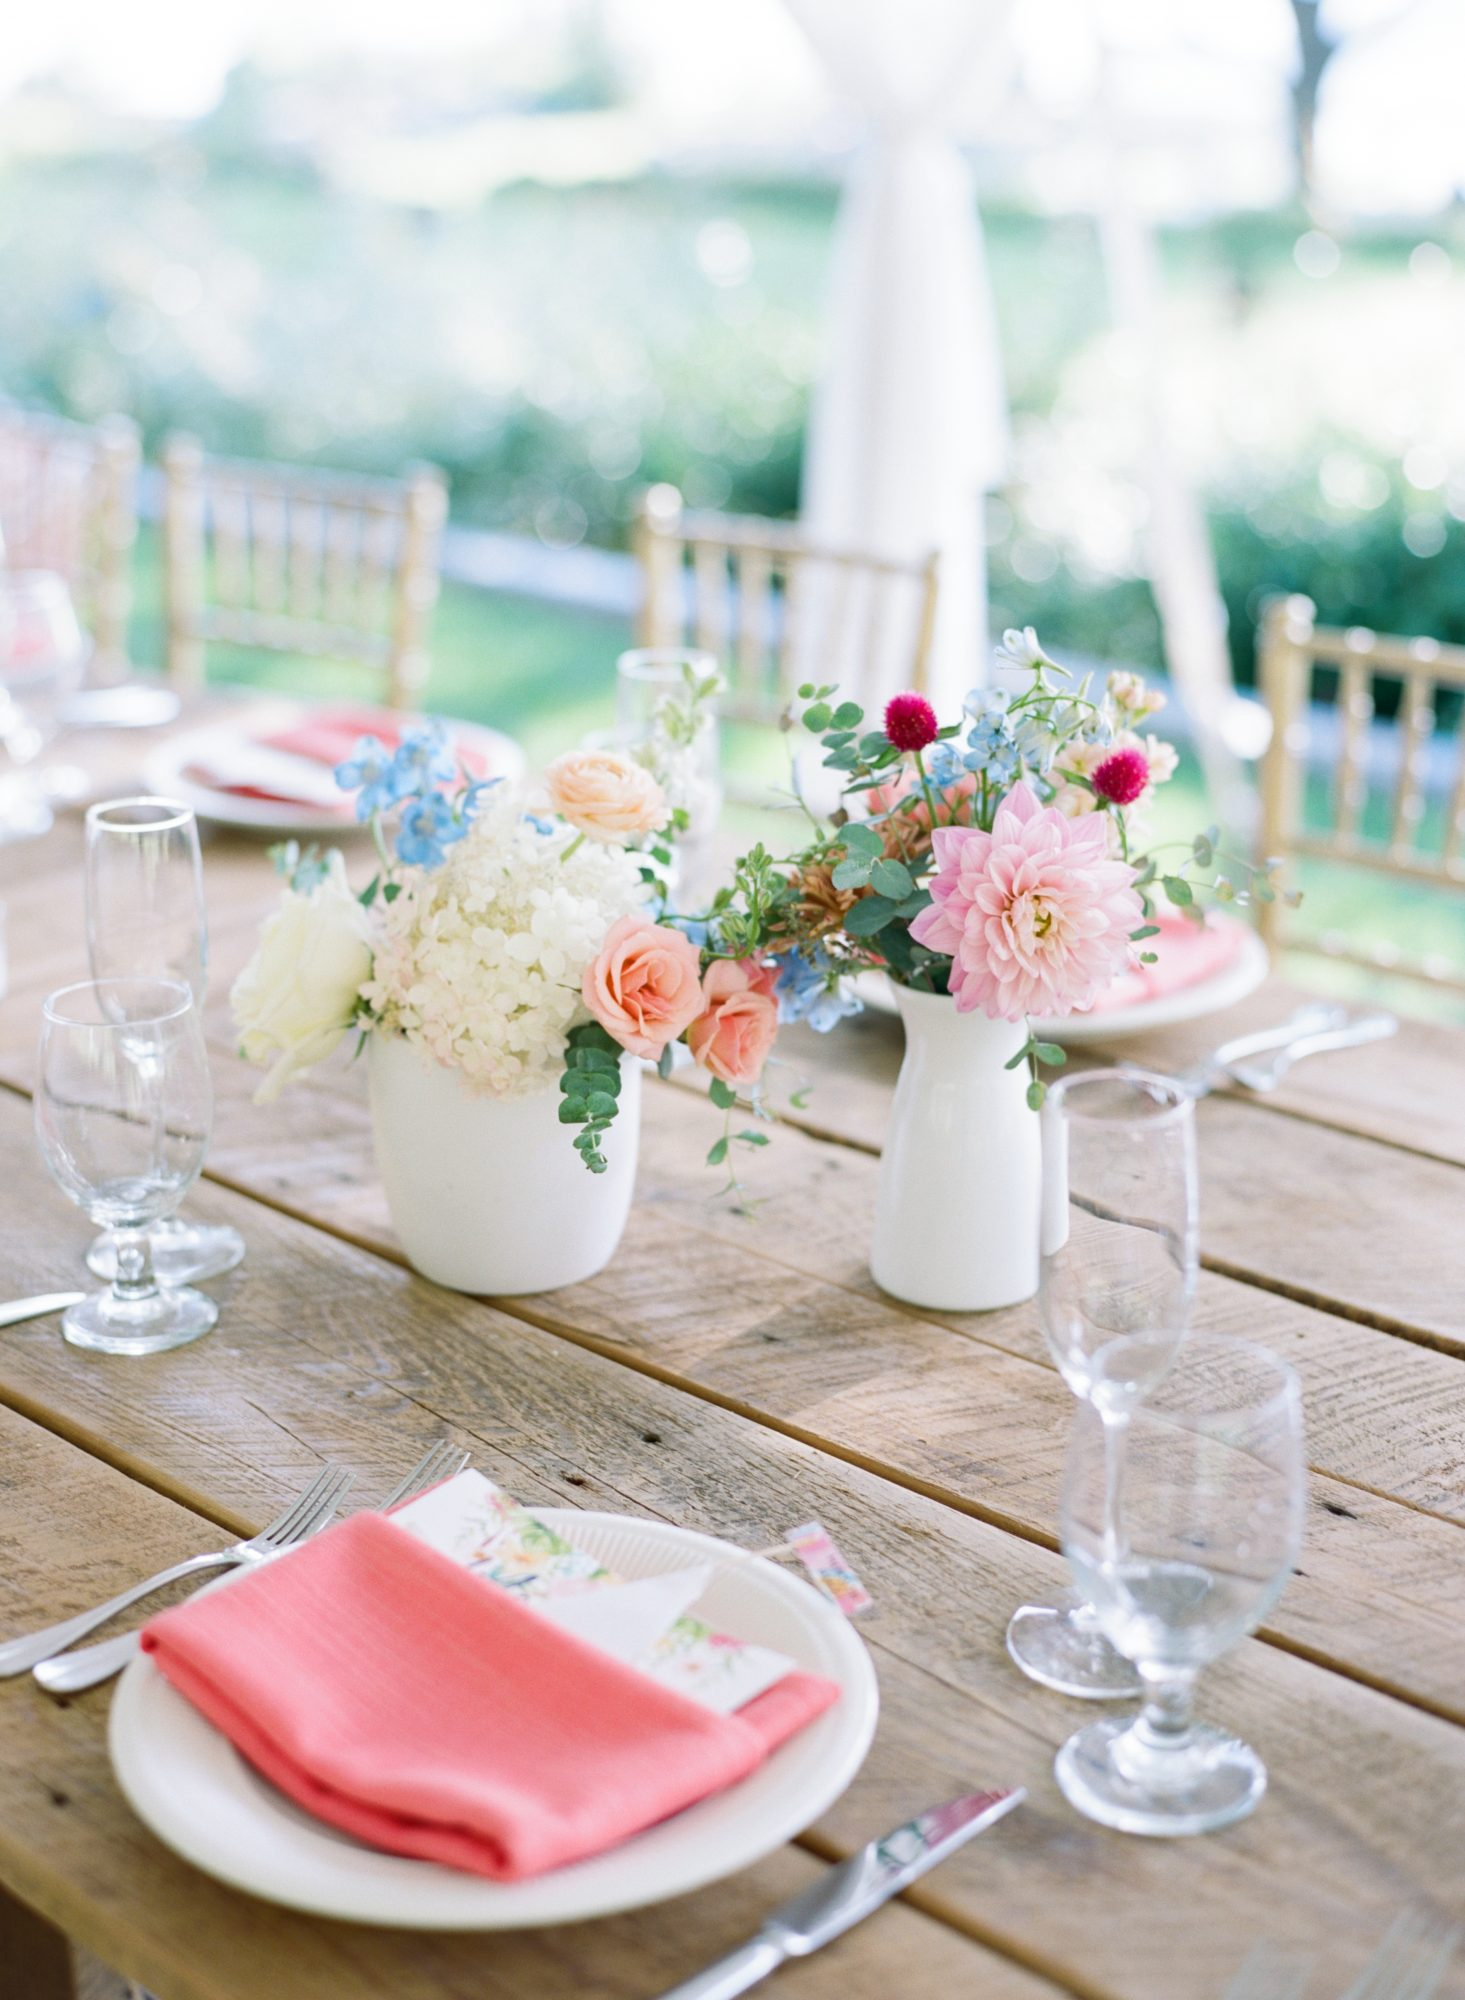 charlene jeremy wedding reception table centerpieces